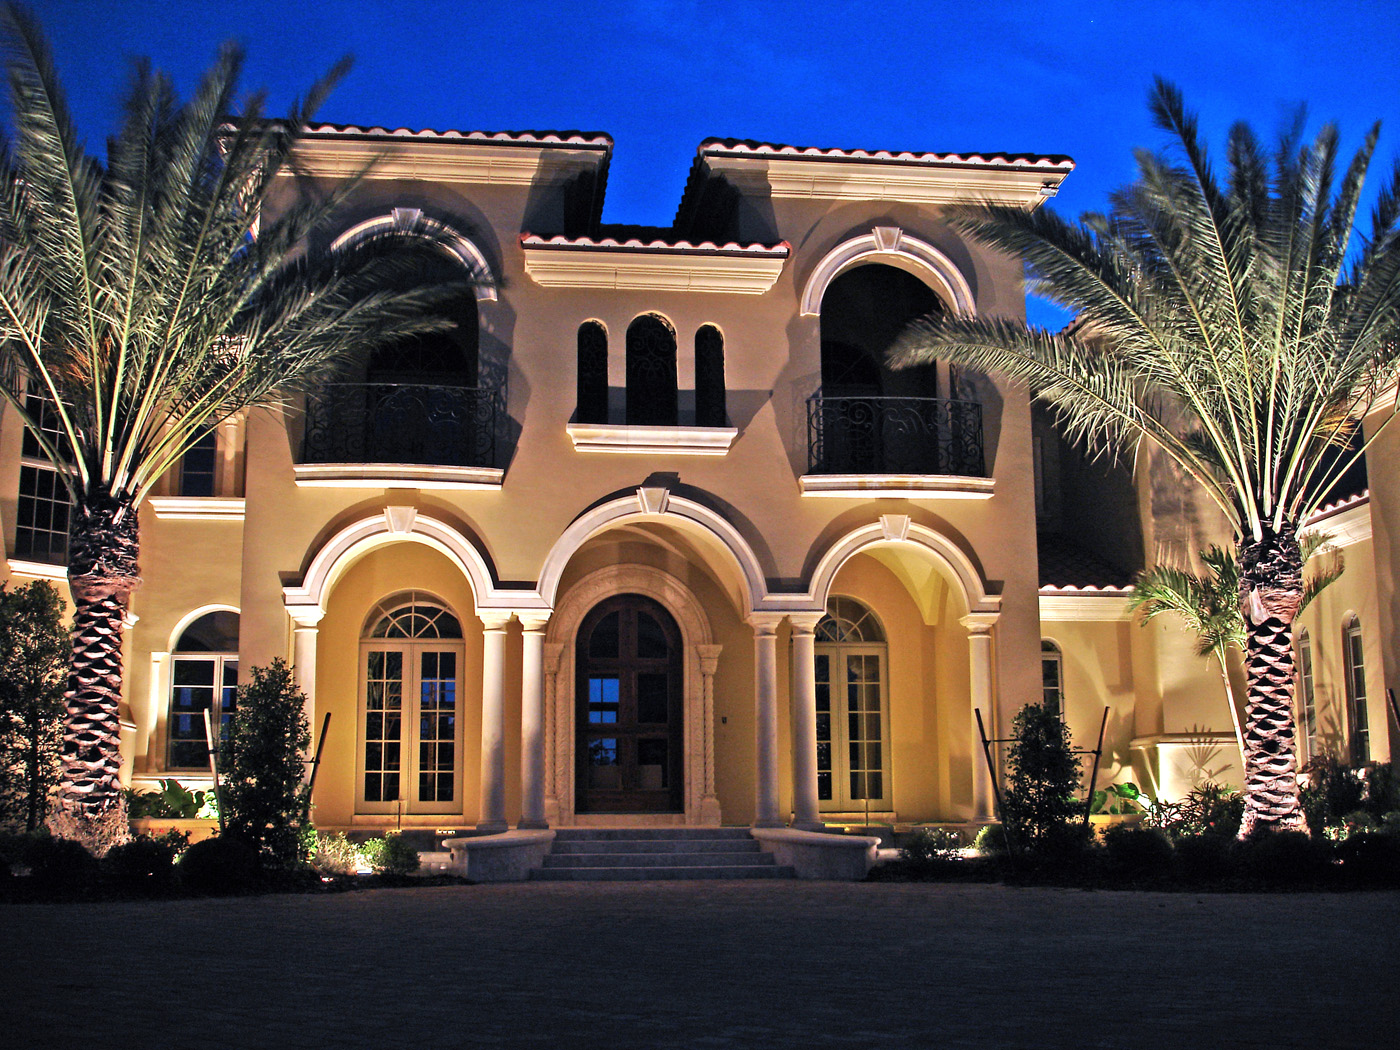 Outdoor Lighting Tampa Bonita springs outdoor lighting image gallery bonita springs outdoor lighting for your home workwithnaturefo